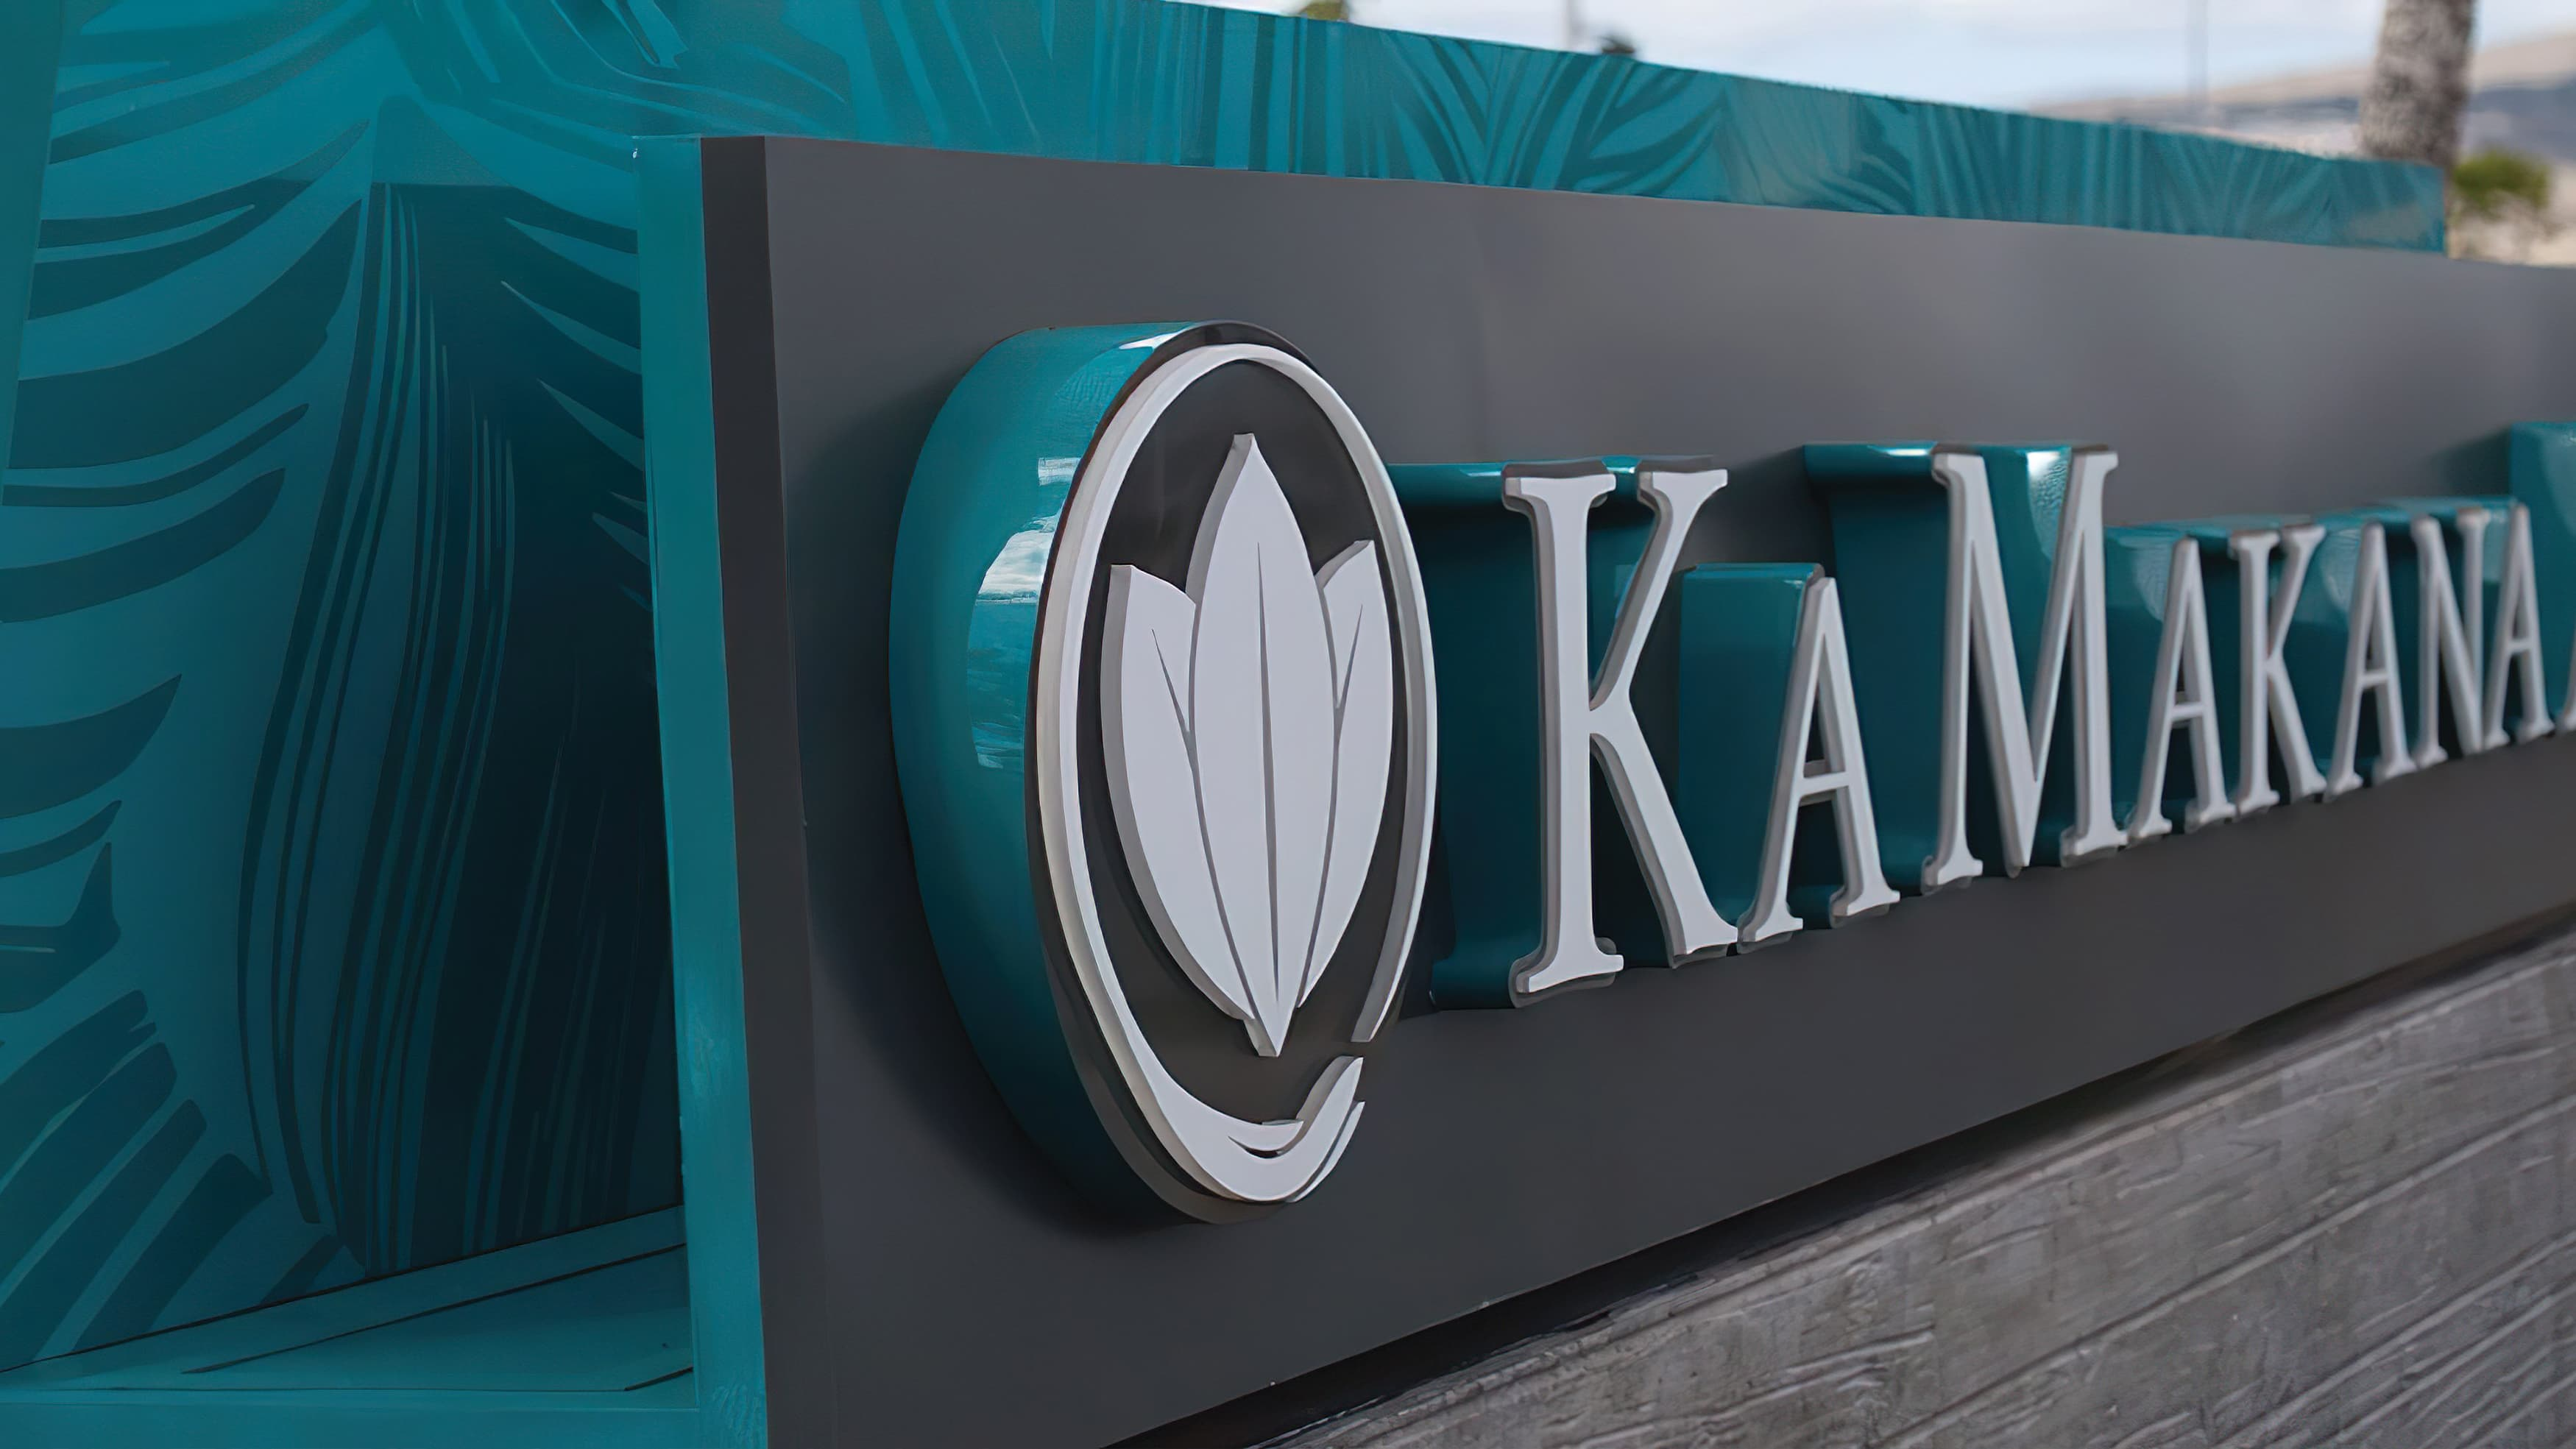 Monument signage at Ka Makana in Hawaii with tone on tone pattern and colored letter returns